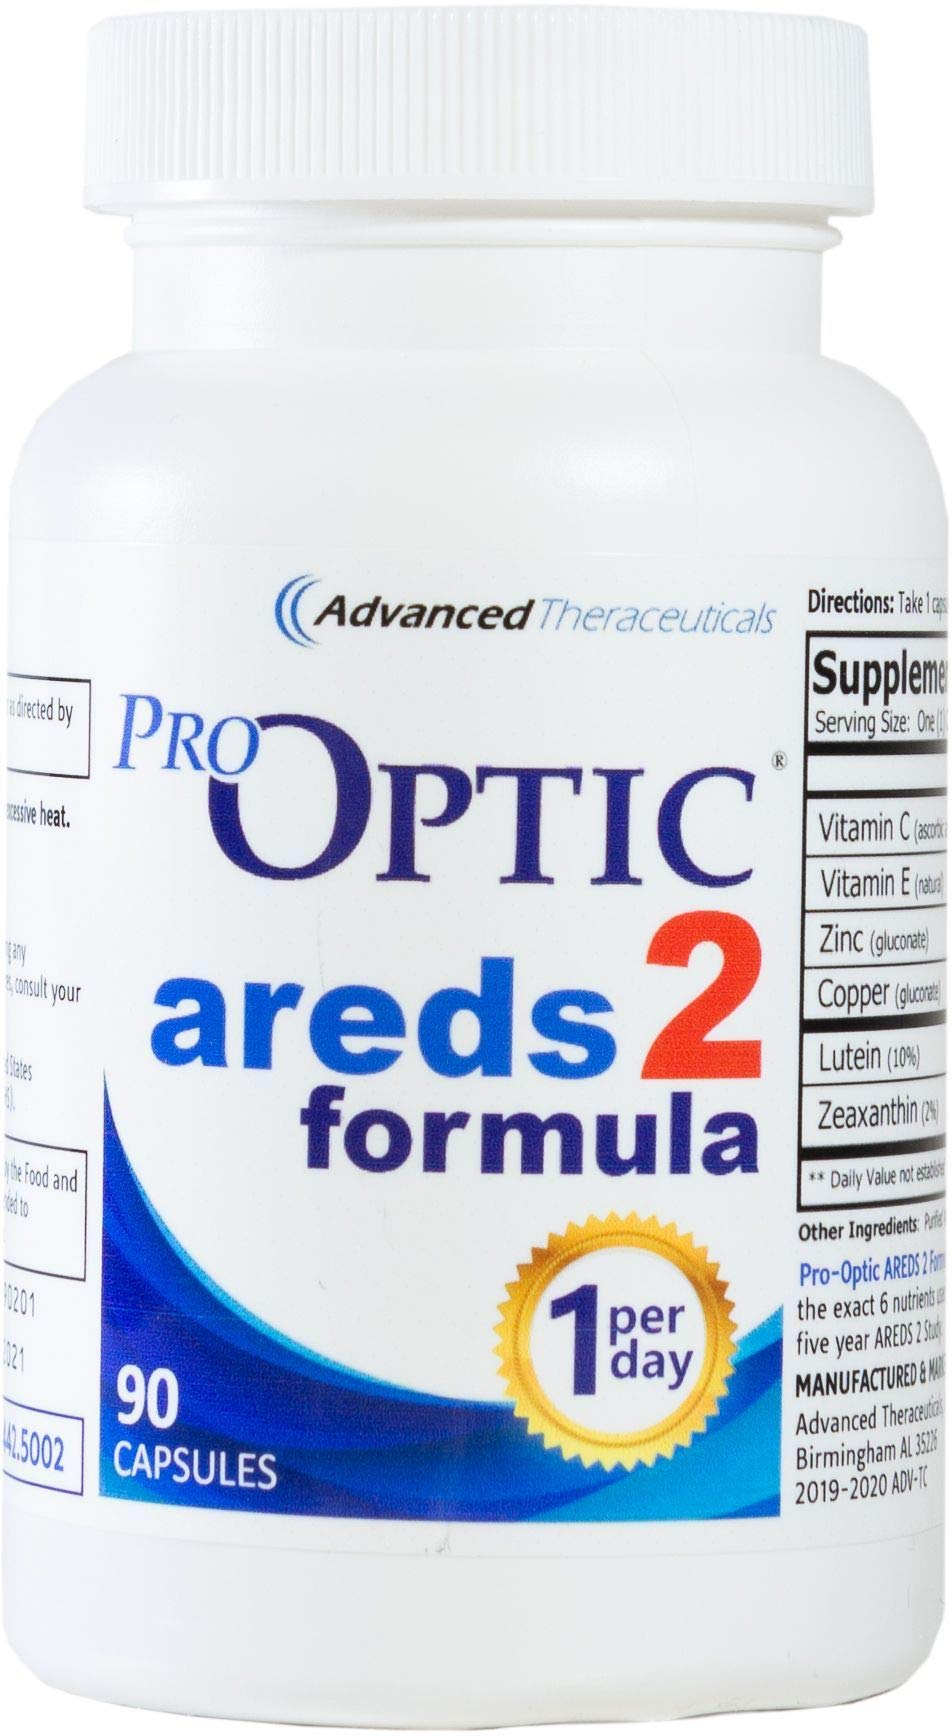 Pro-Optic AREDS 2 Formula (3 Month Supply) 1-Per-Day by Pro-Optic